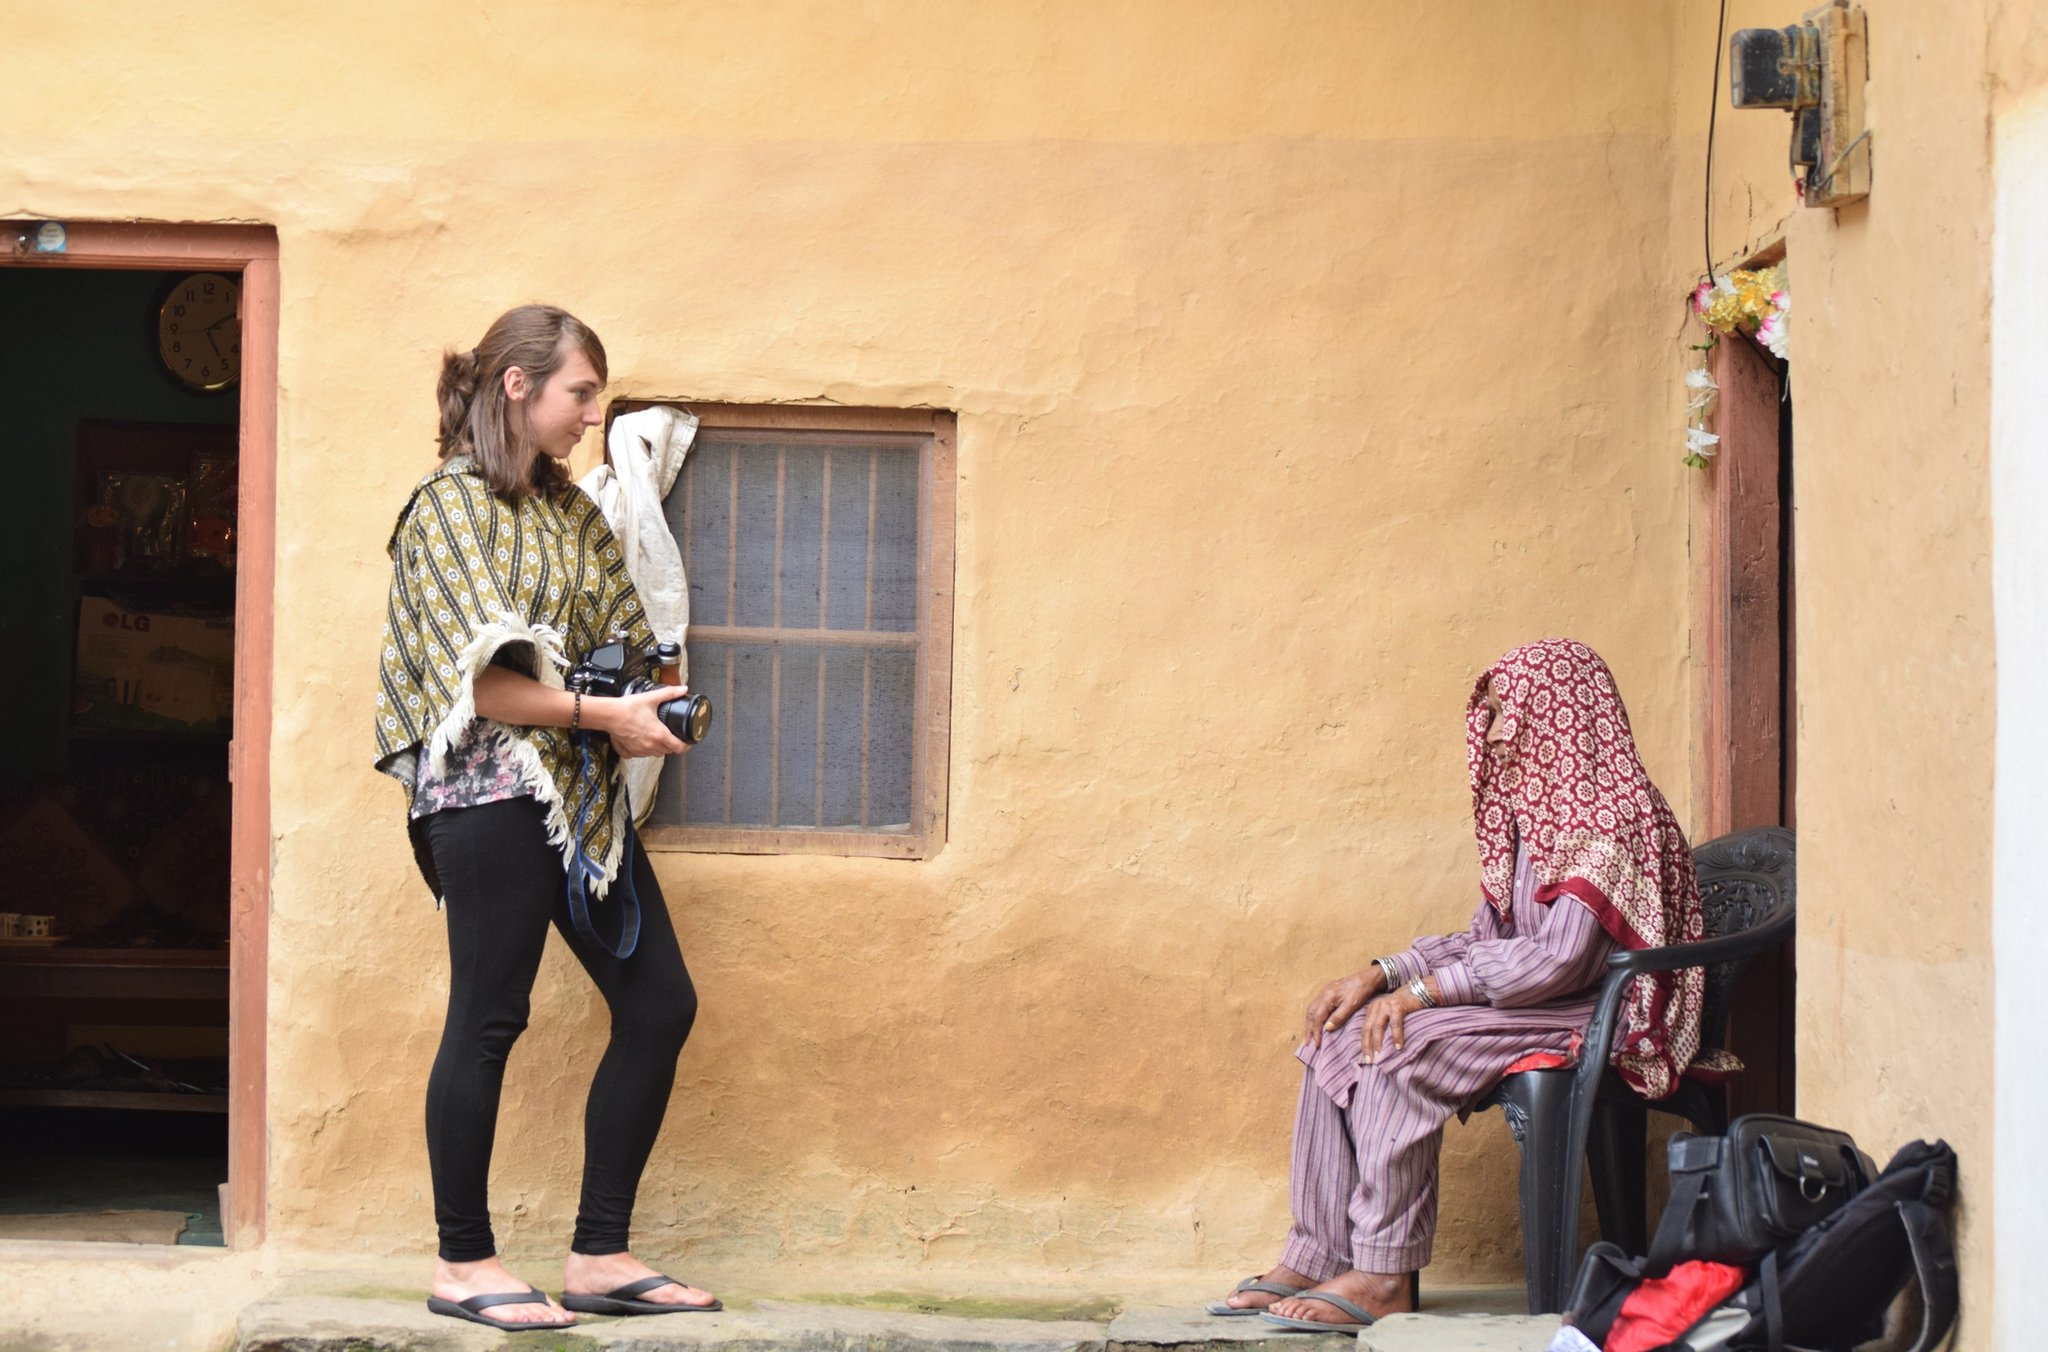 Carly Clarke working on her photography in India